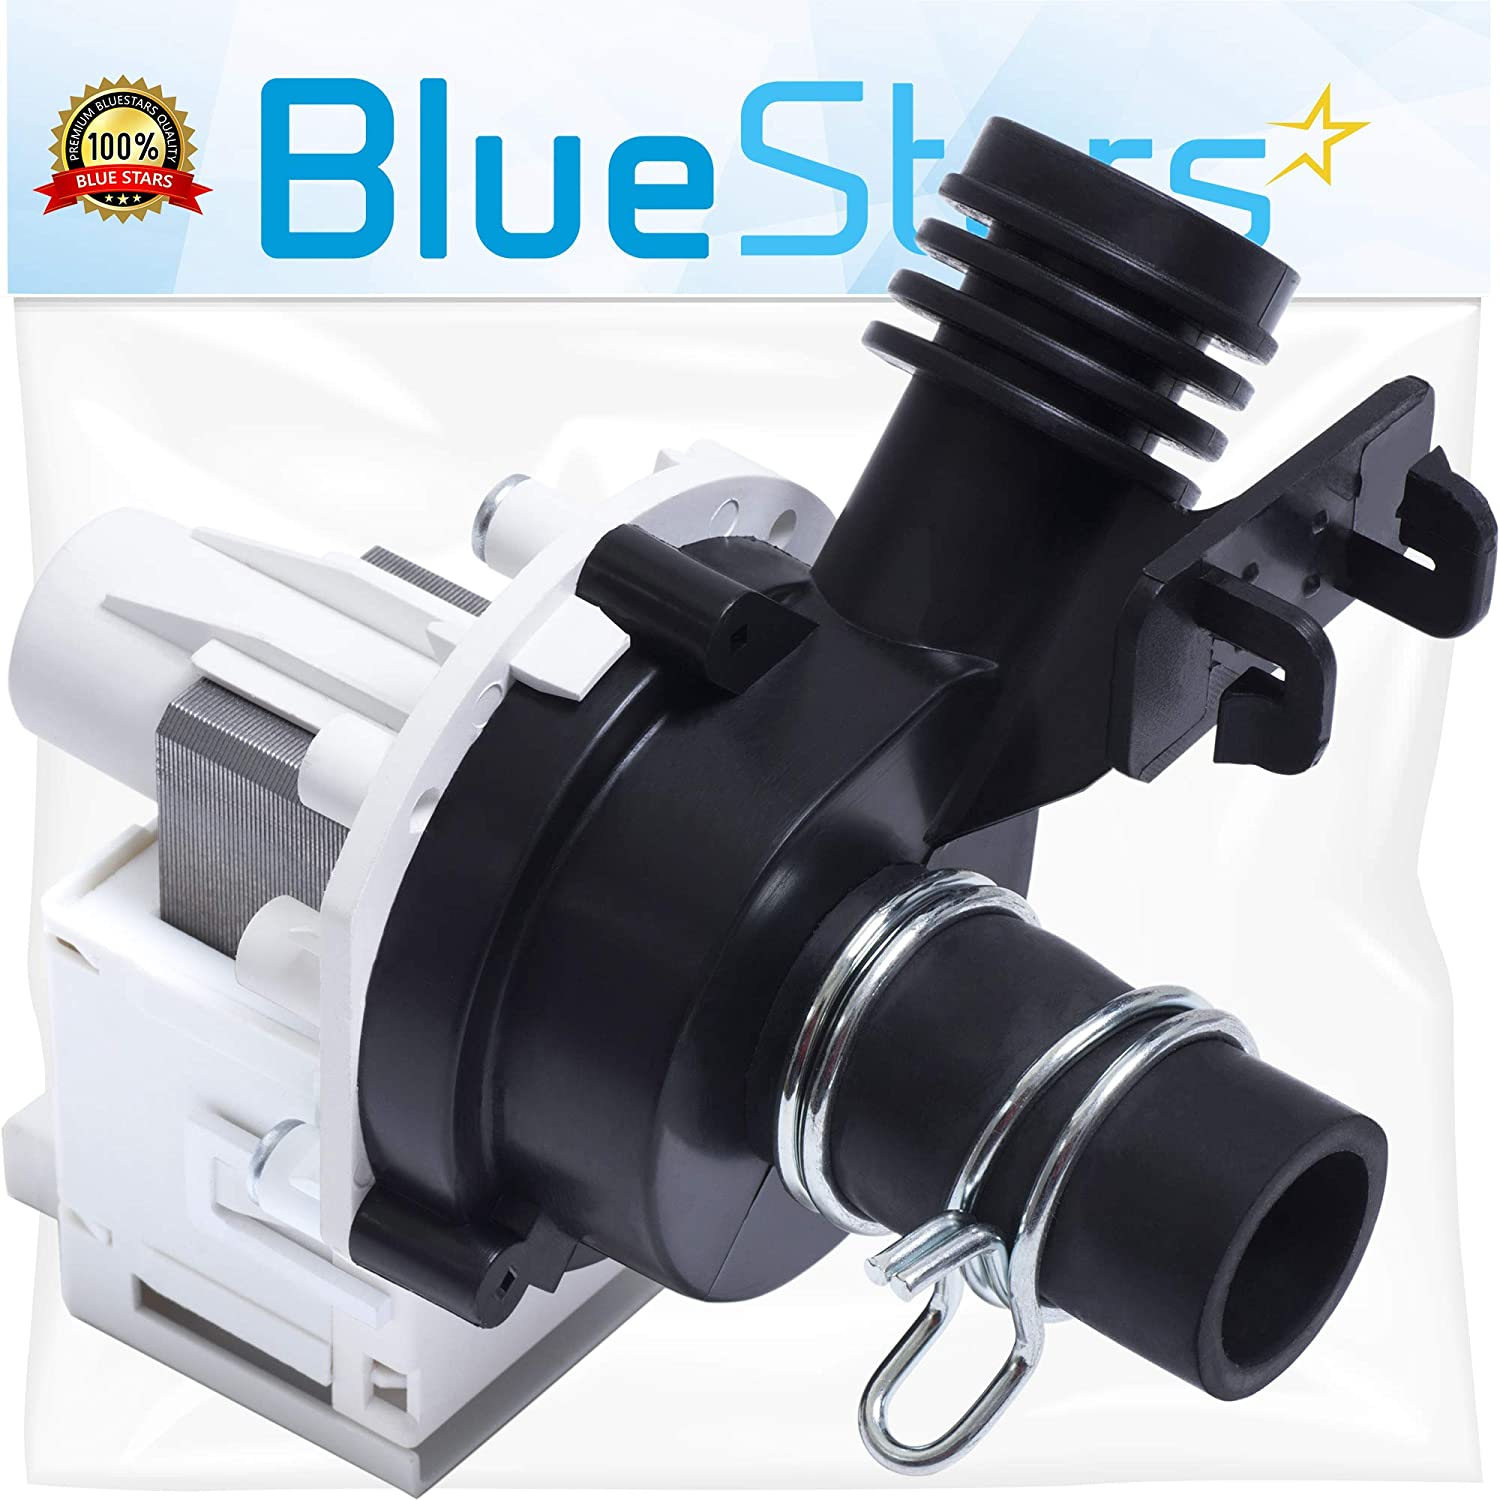 Ultra Durable 154580301 Dishwasher Drain Pump Replacement Part by Blue Stars – Exact Fit For Frigidaire Dishwashers - Replaces AP4019644 1257094 154491301